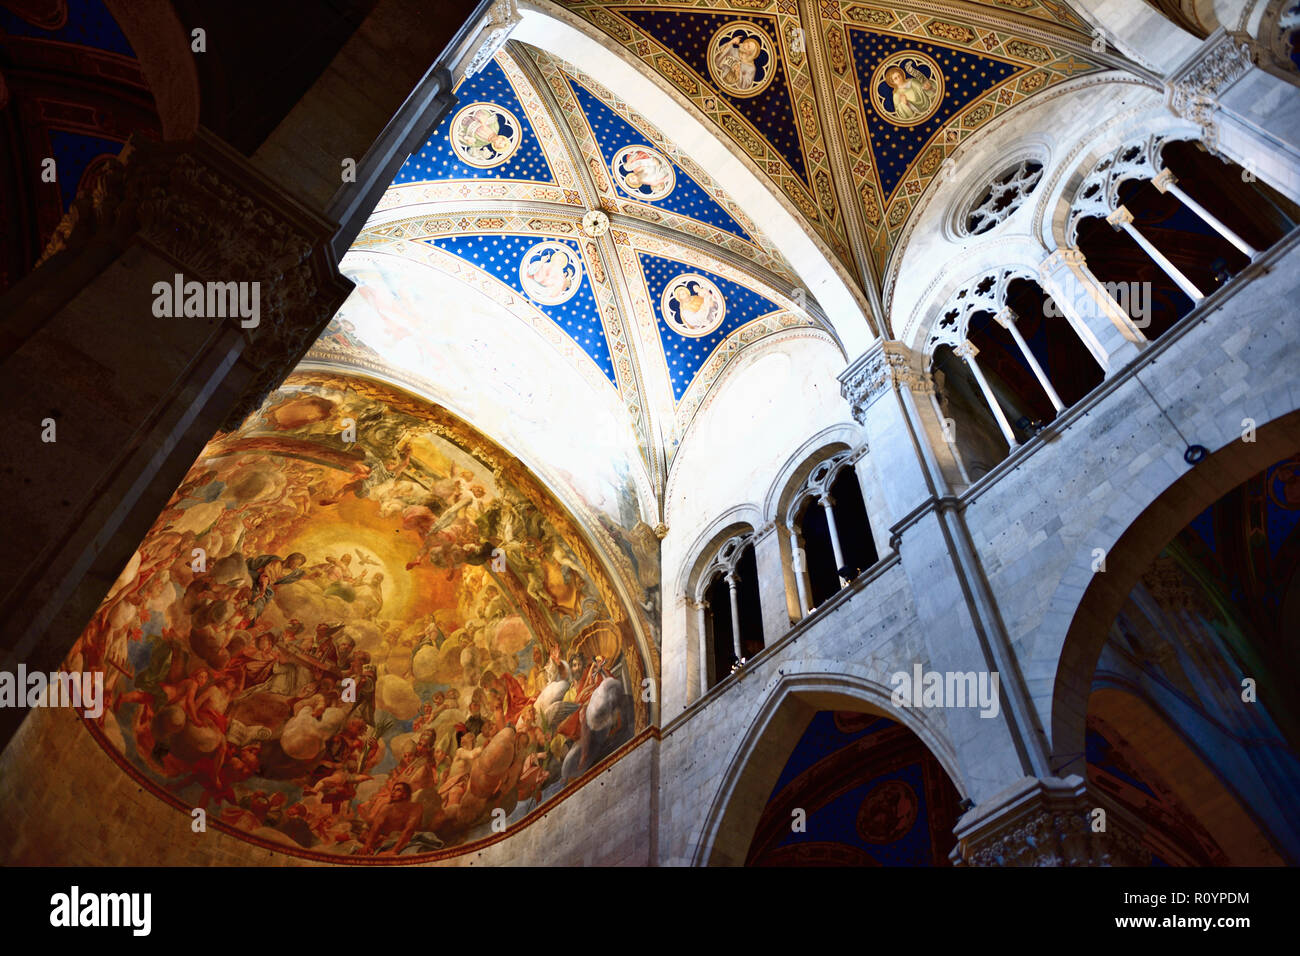 Painted ceilings and vaulting in Cattedrale di San Martino. Lucca, Province of Lucca, Tuscany, Italy, Europe - Stock Image